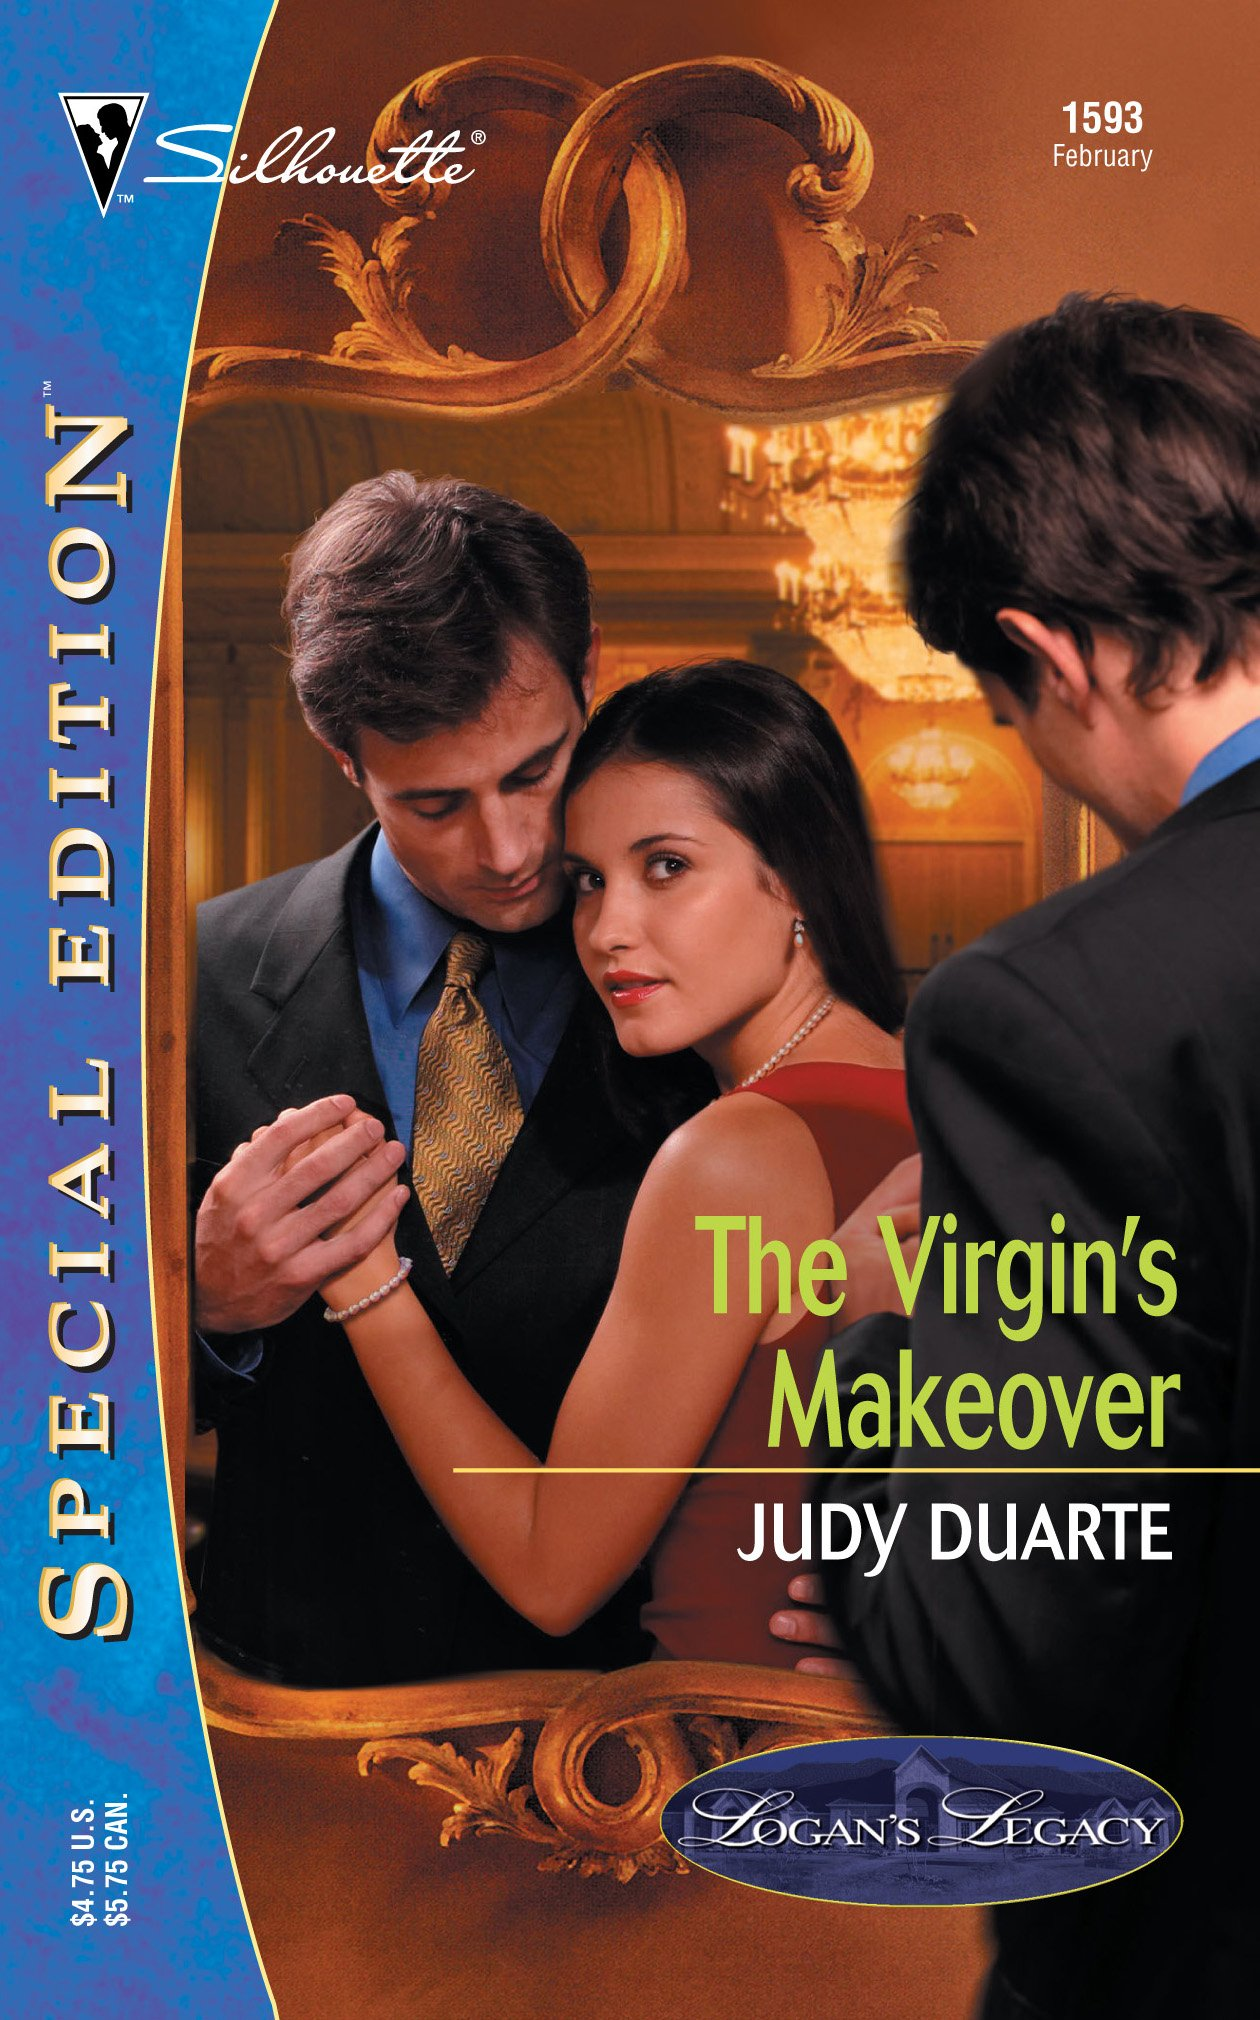 Read Online The Virgin's Makeover (Logan's Legacy)  (Silhouette Special Edition No. 1593) ebook